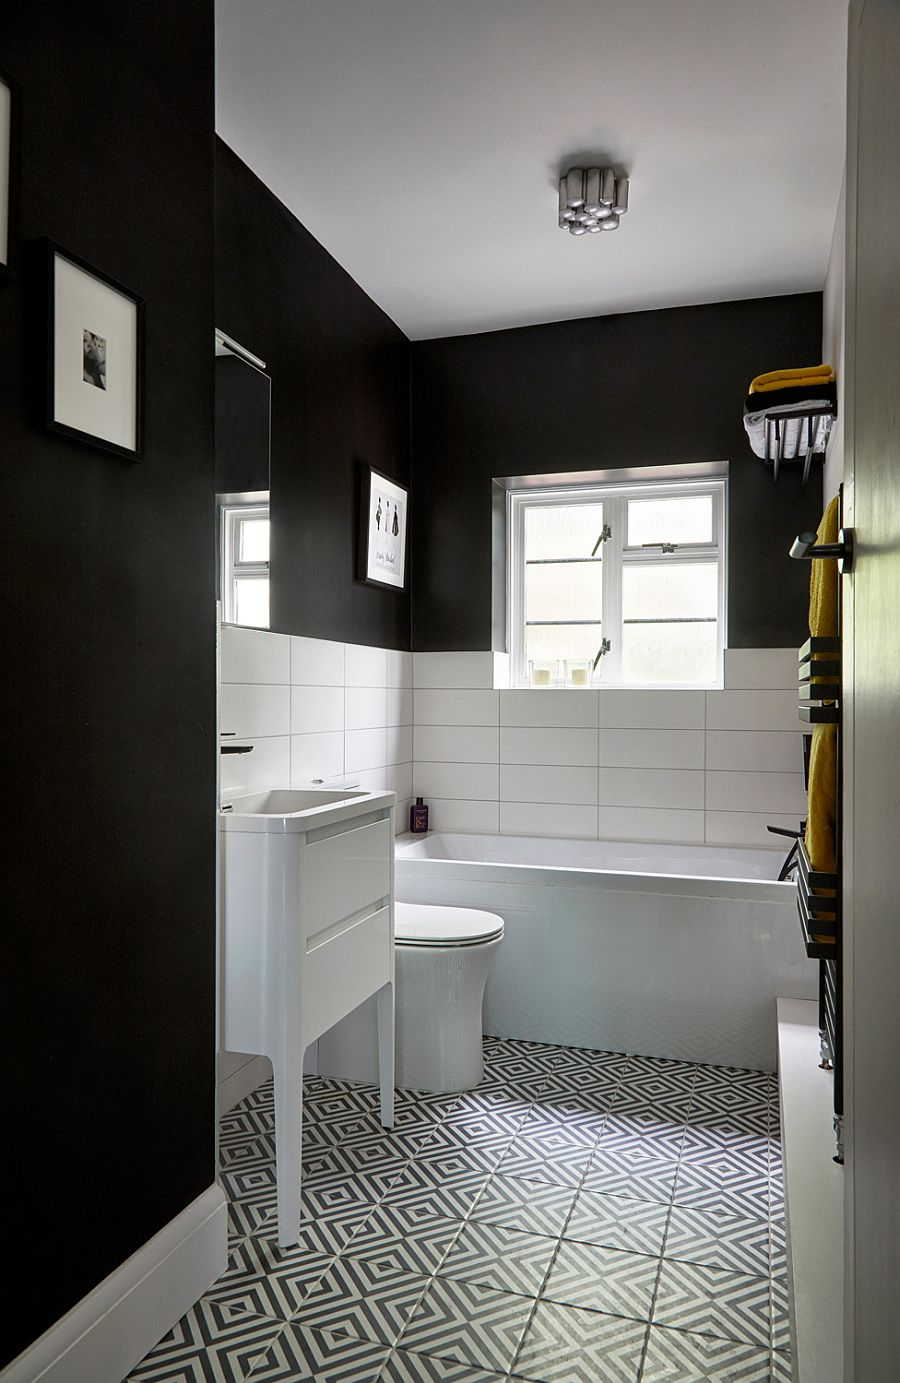 Eclectic contemporary bathroom in black and white with floor tiles that usher in pattern